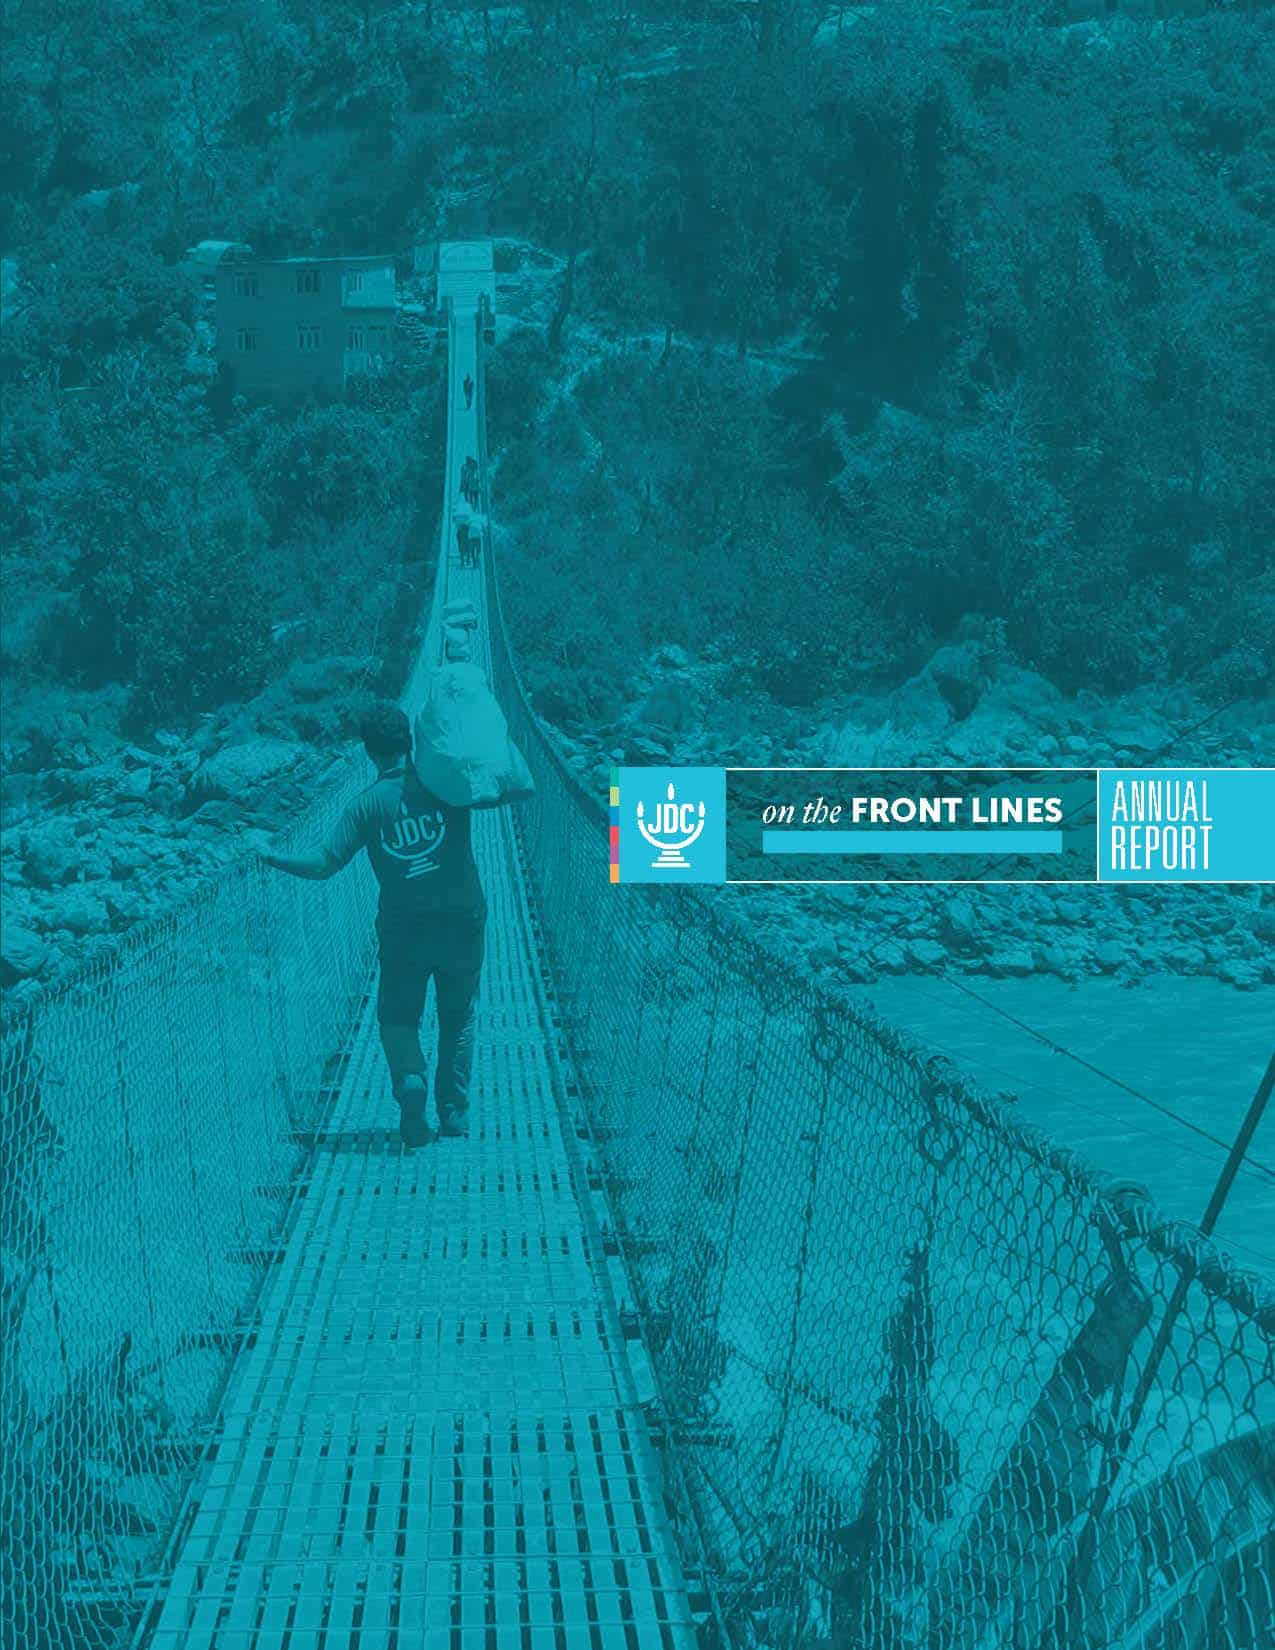 JDC's Annual Report 2016 in which a JDC humanitarian aid worker carries aid across a rope-bridge.